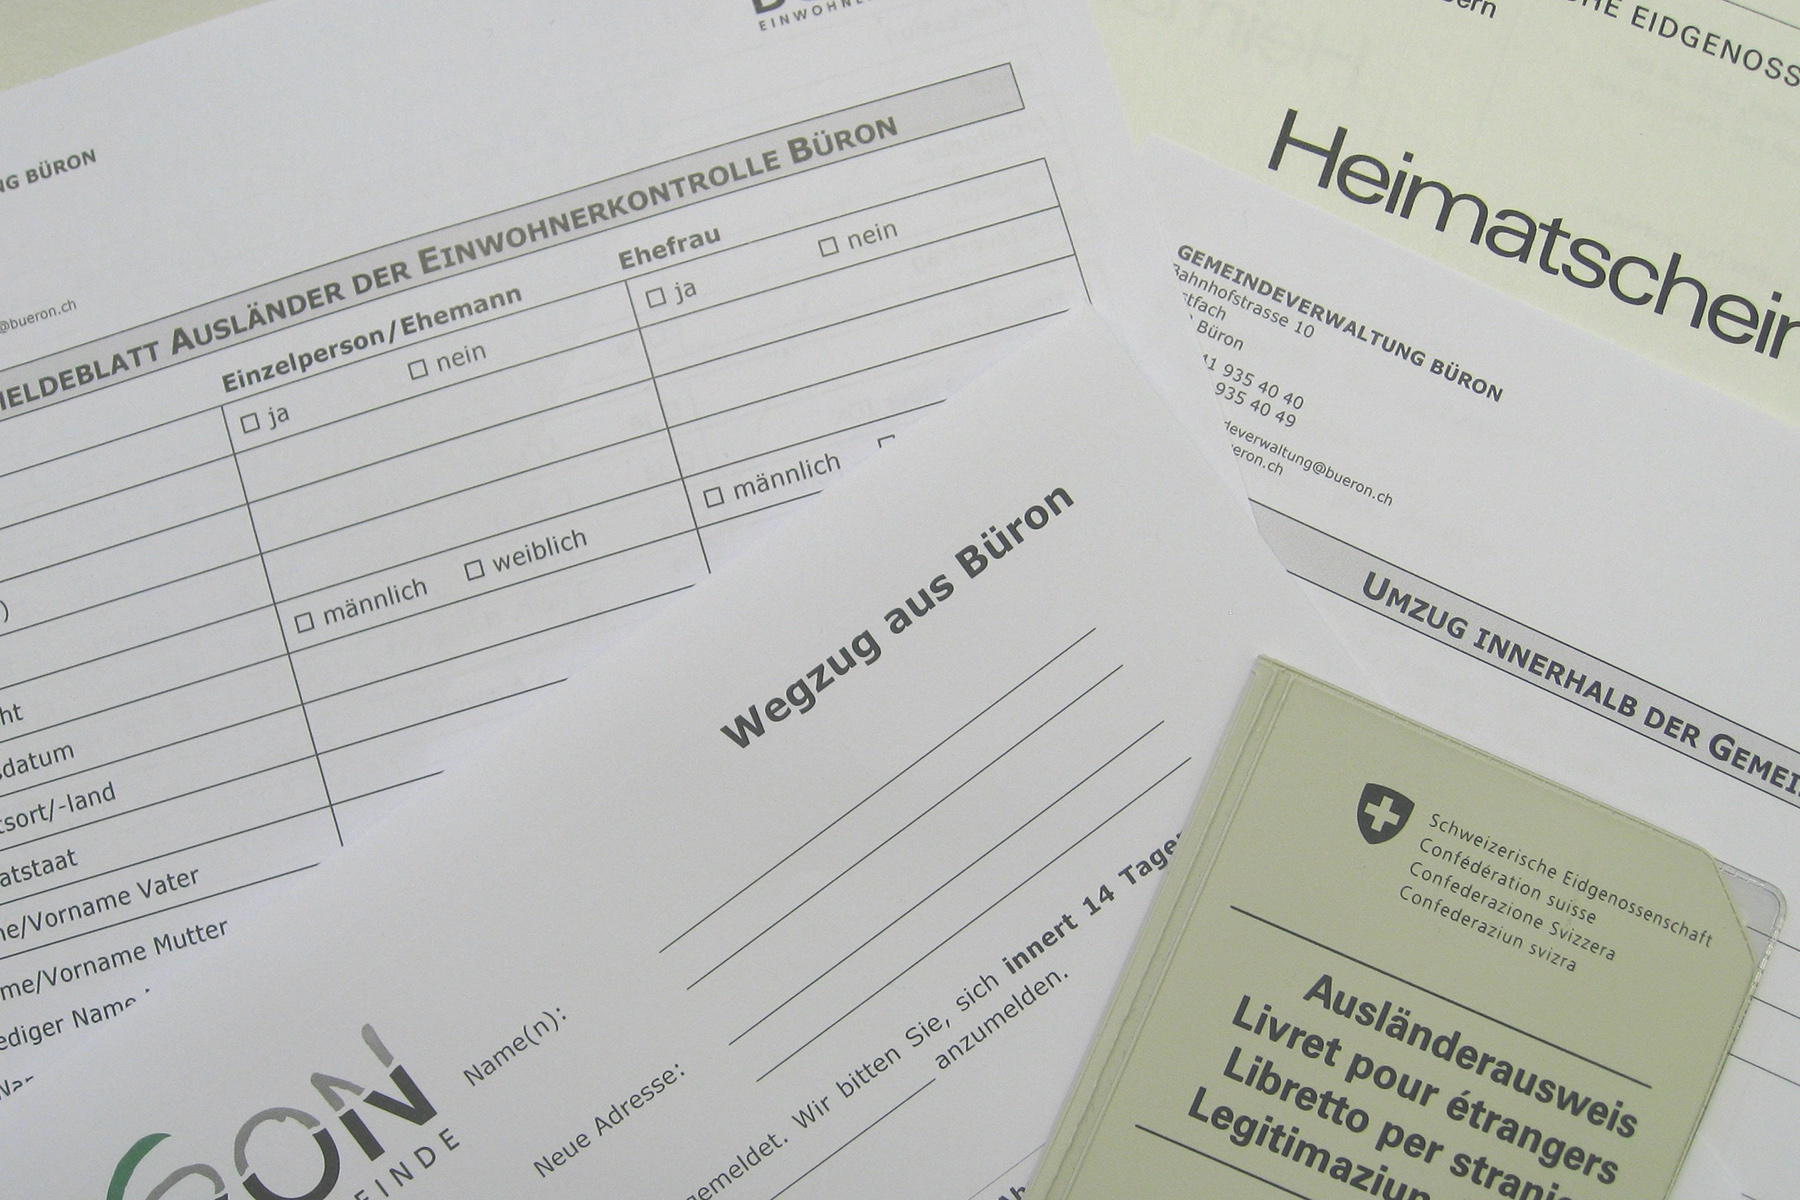 Forms to register at your address in Switzerland